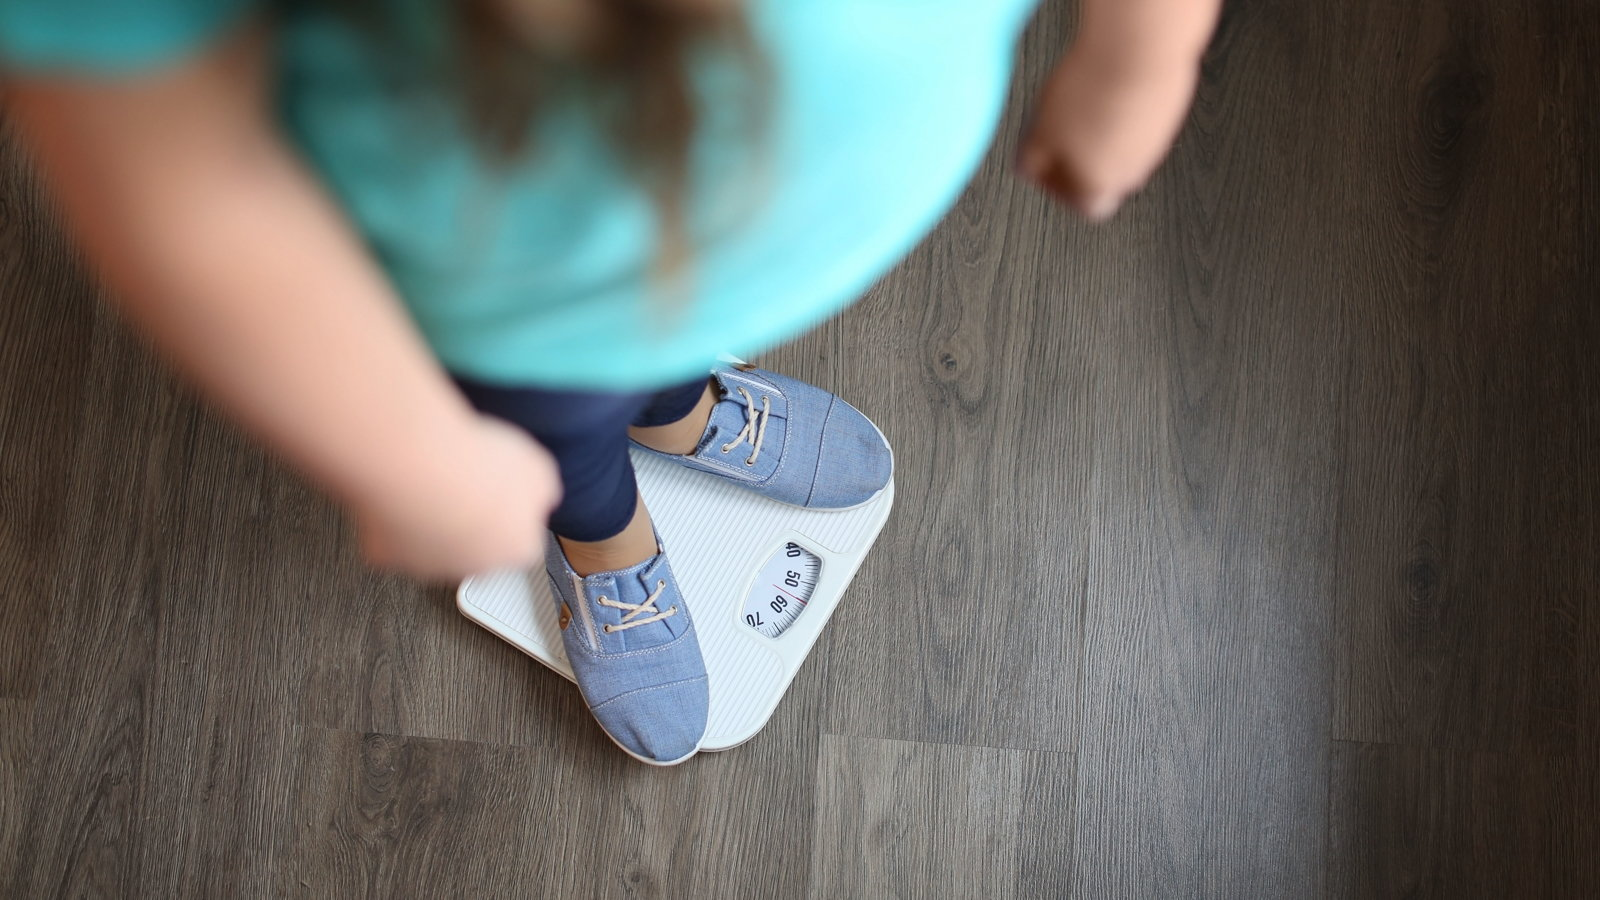 overweight girl stepping on scale